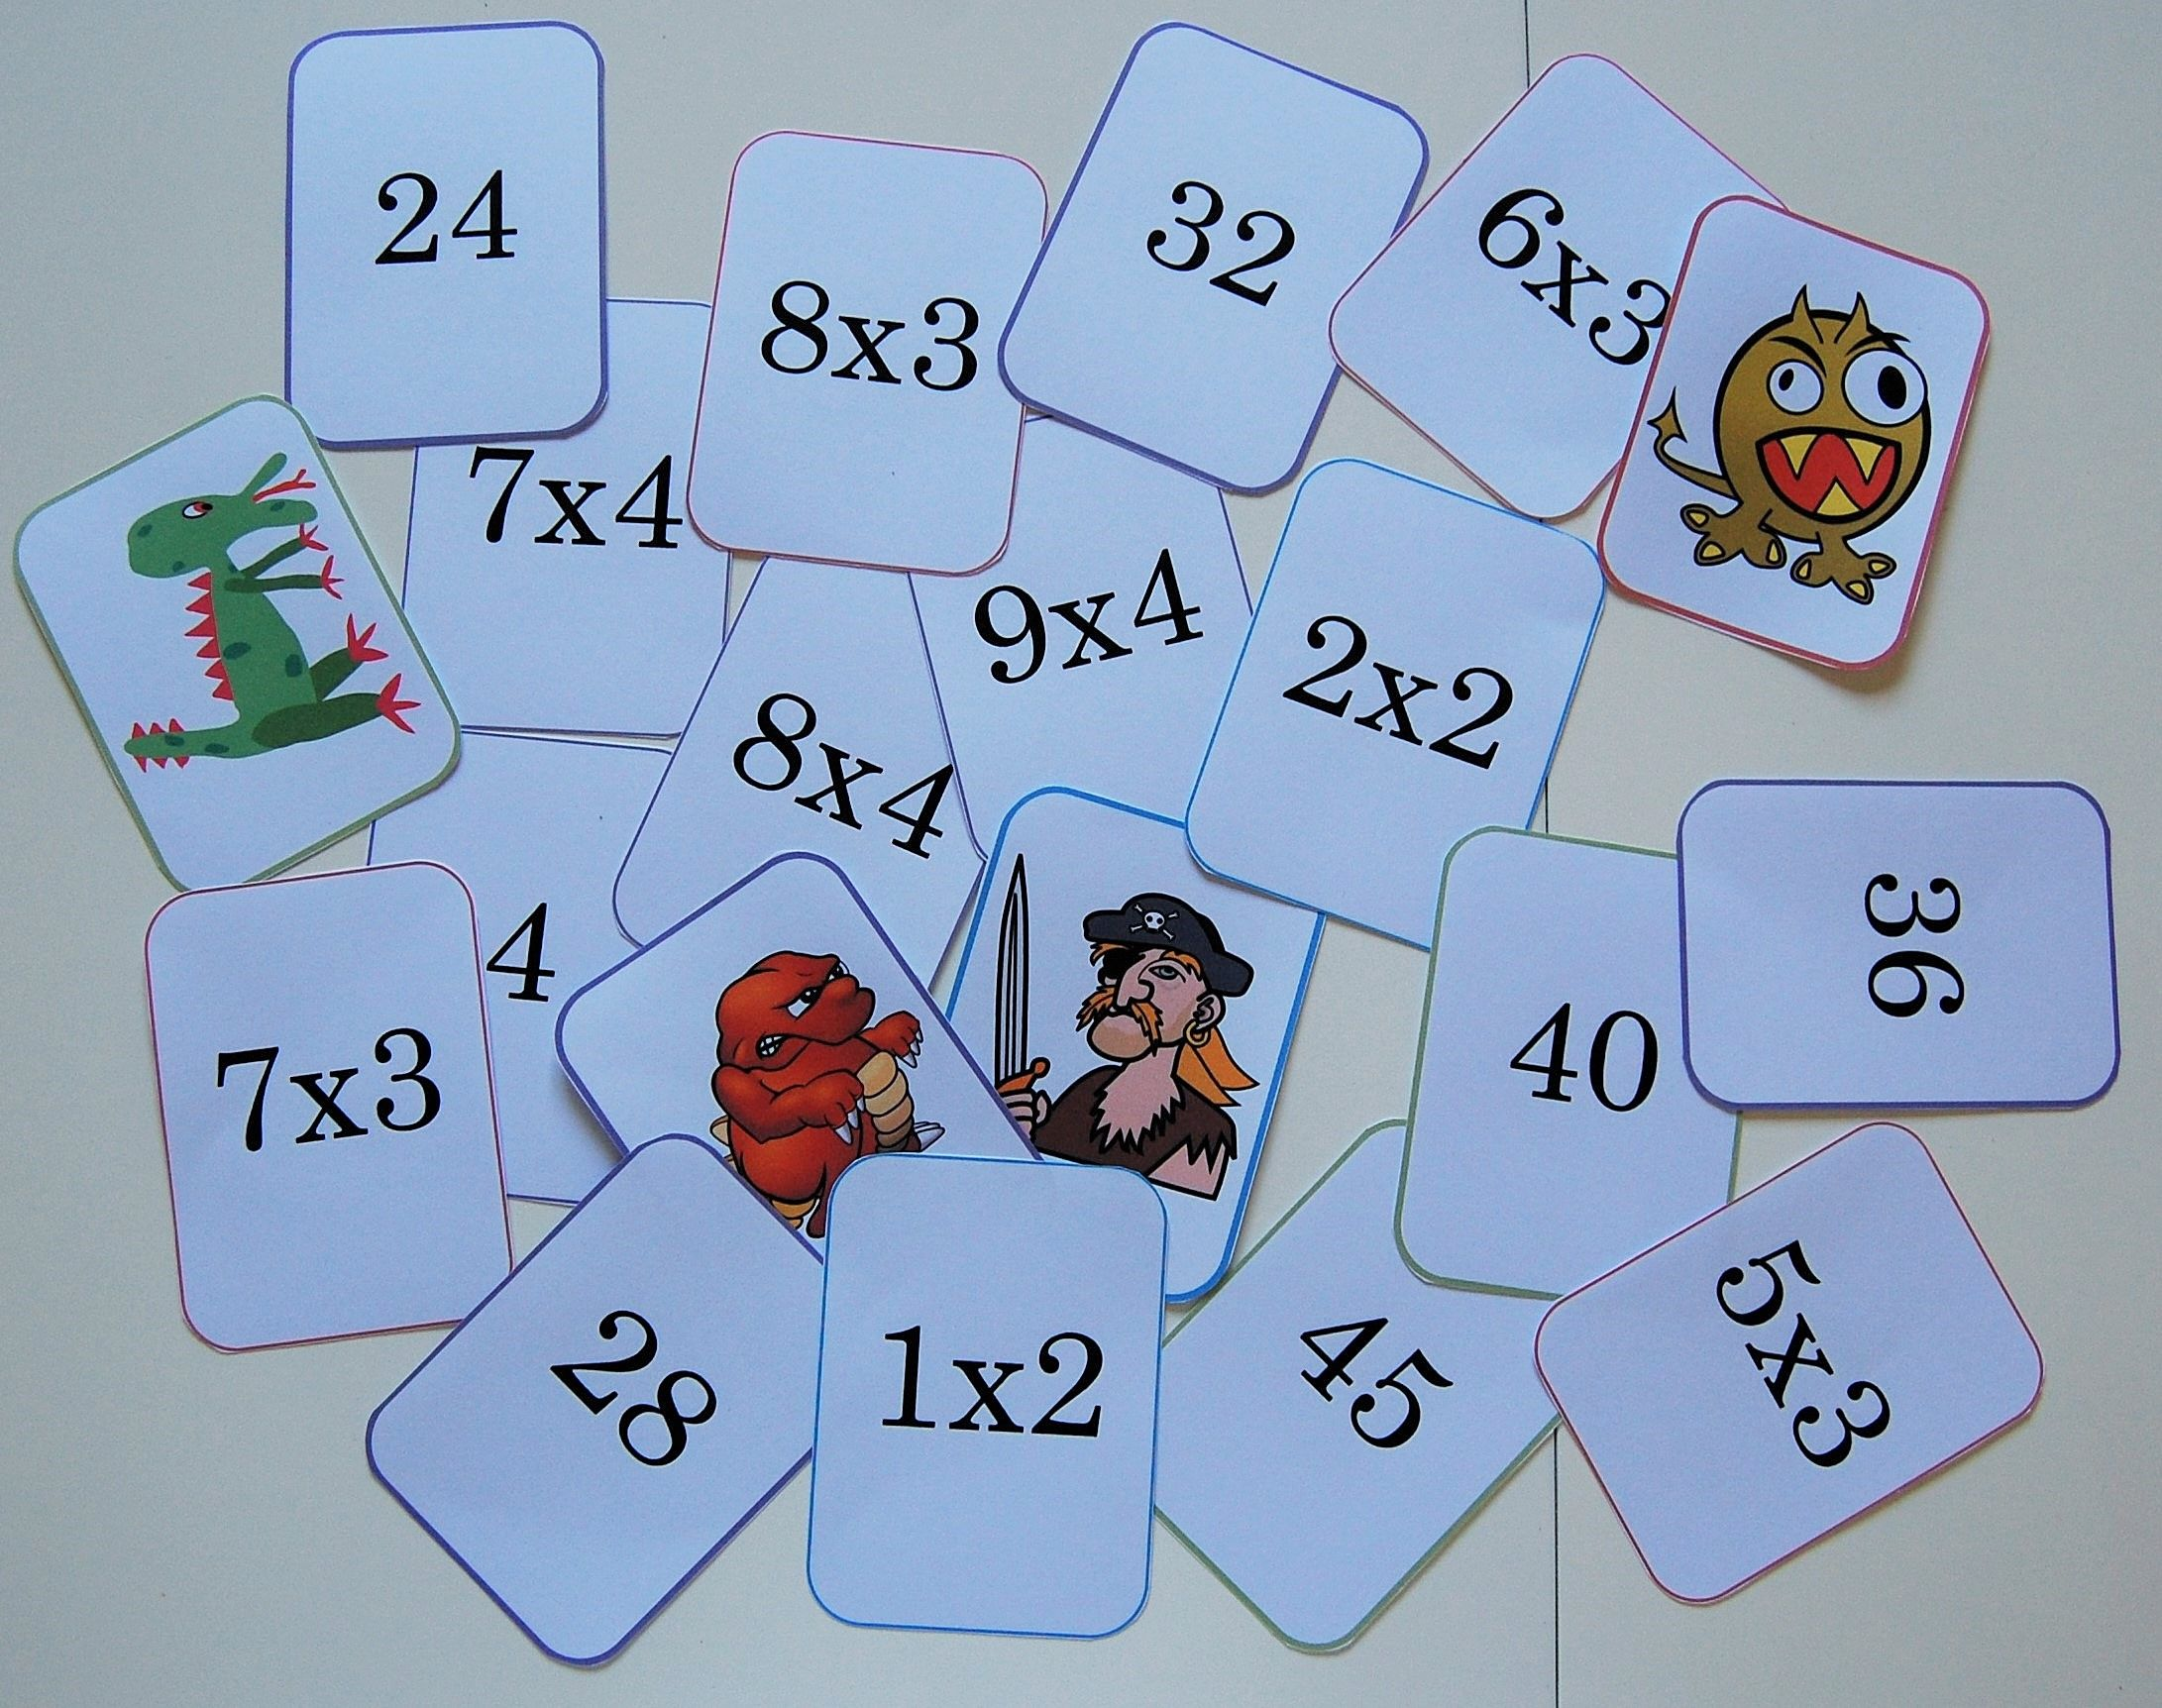 Mistigris des tables de multiplication 1 ecole pinterest table de multiplication - Jeux gratuit de table de multiplication ...